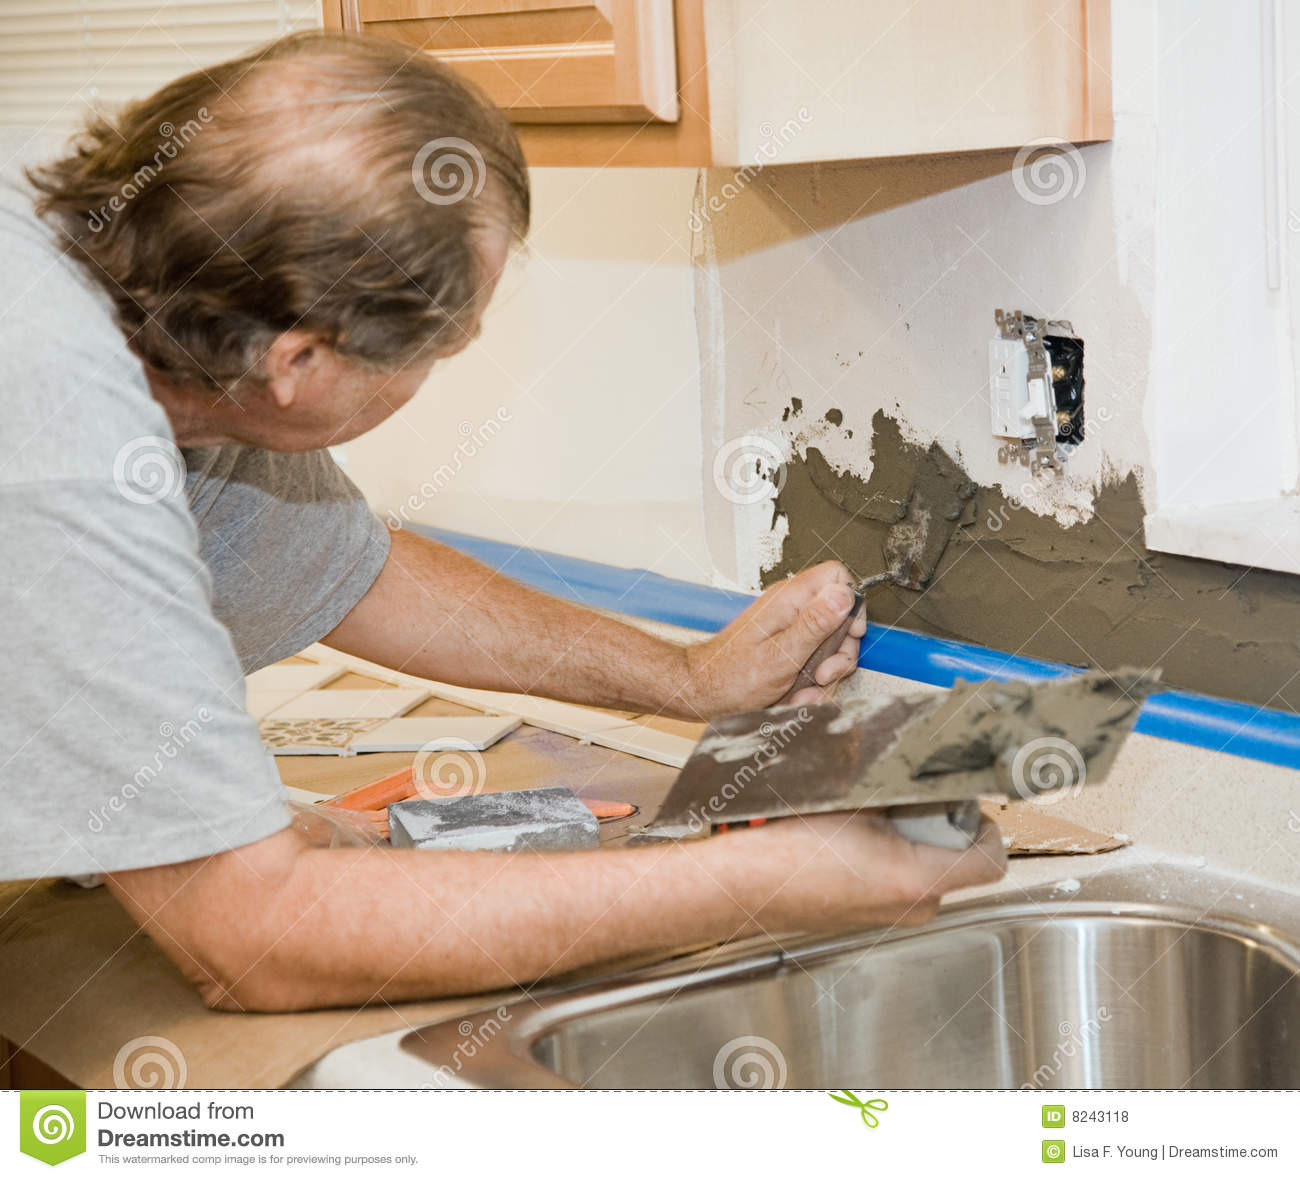 Tile Setter Applying Mortar Royalty Free Stock Photos   Image  8243118